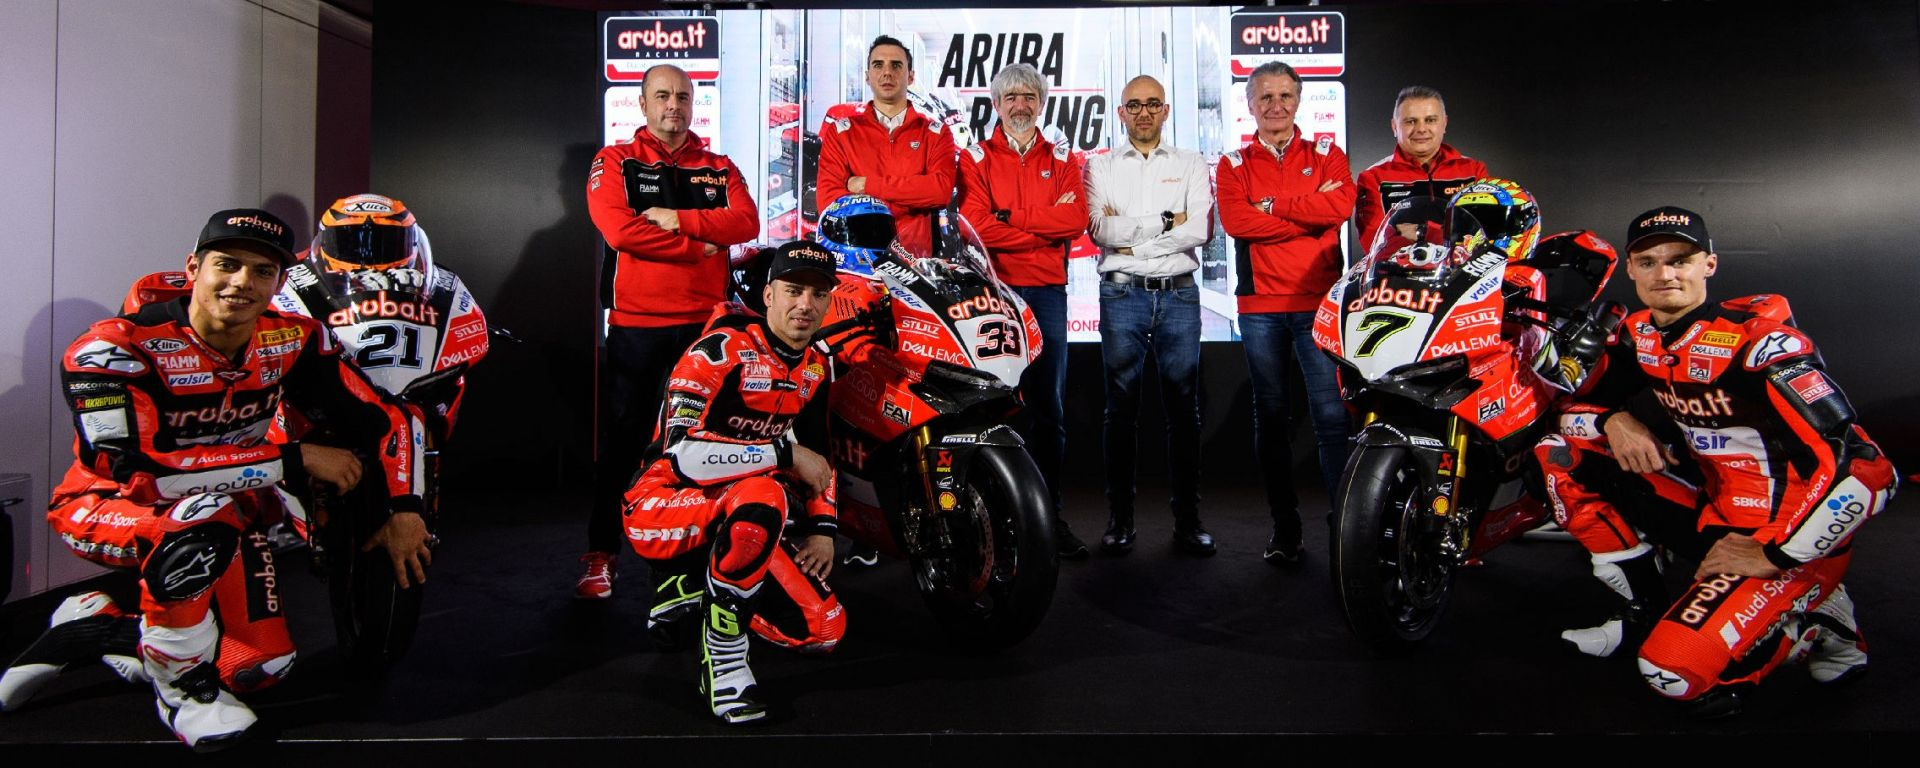 team ducati aruba 2018 superbike